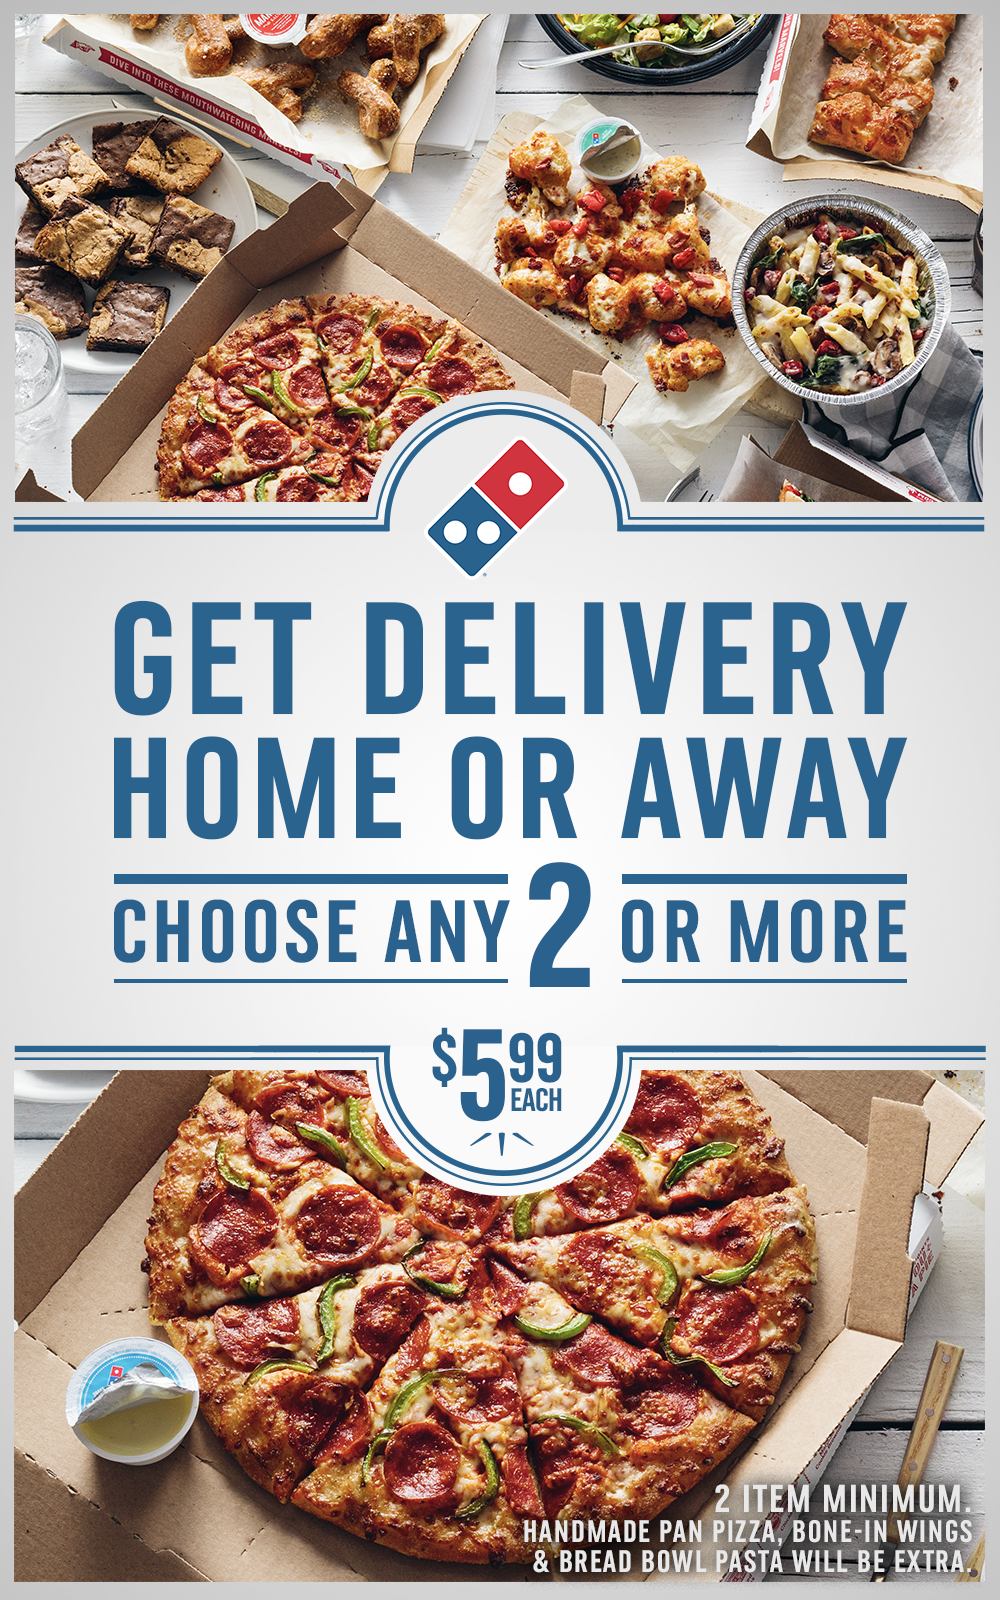 Enjoy the Domino's Mix & Match deal for food delivery at